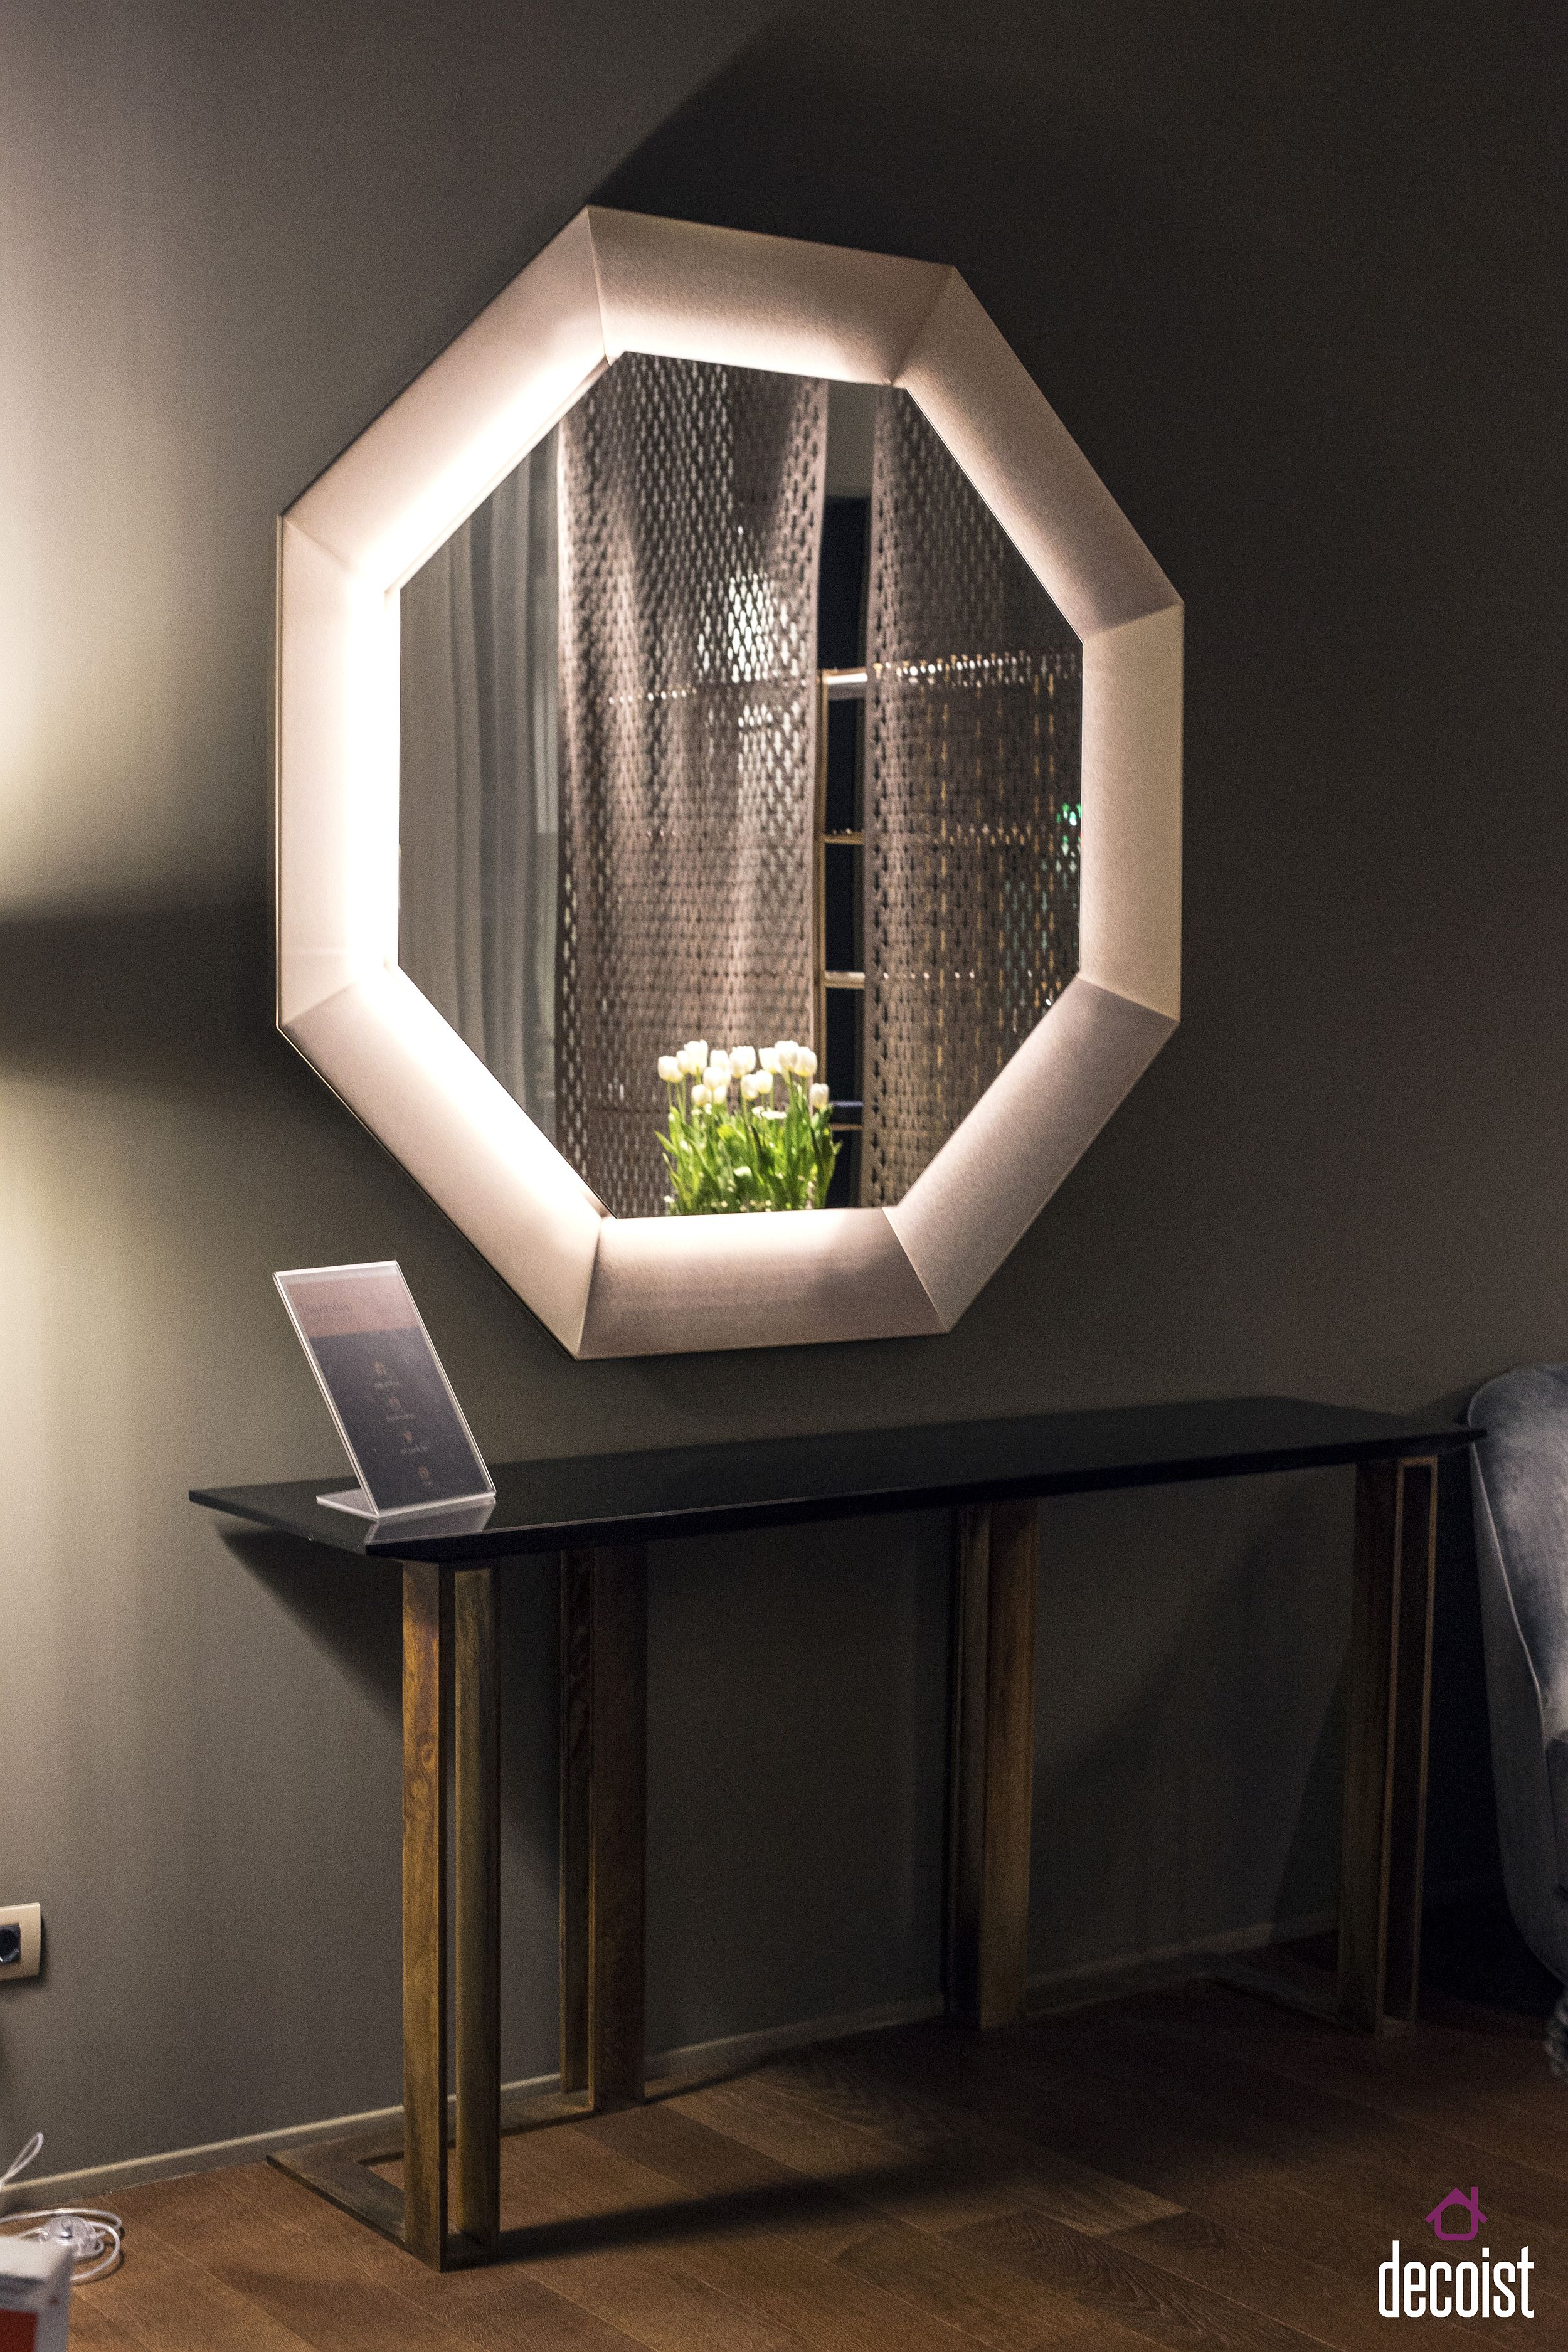 Octagonal mirror frame is a showstopper in the bathroom